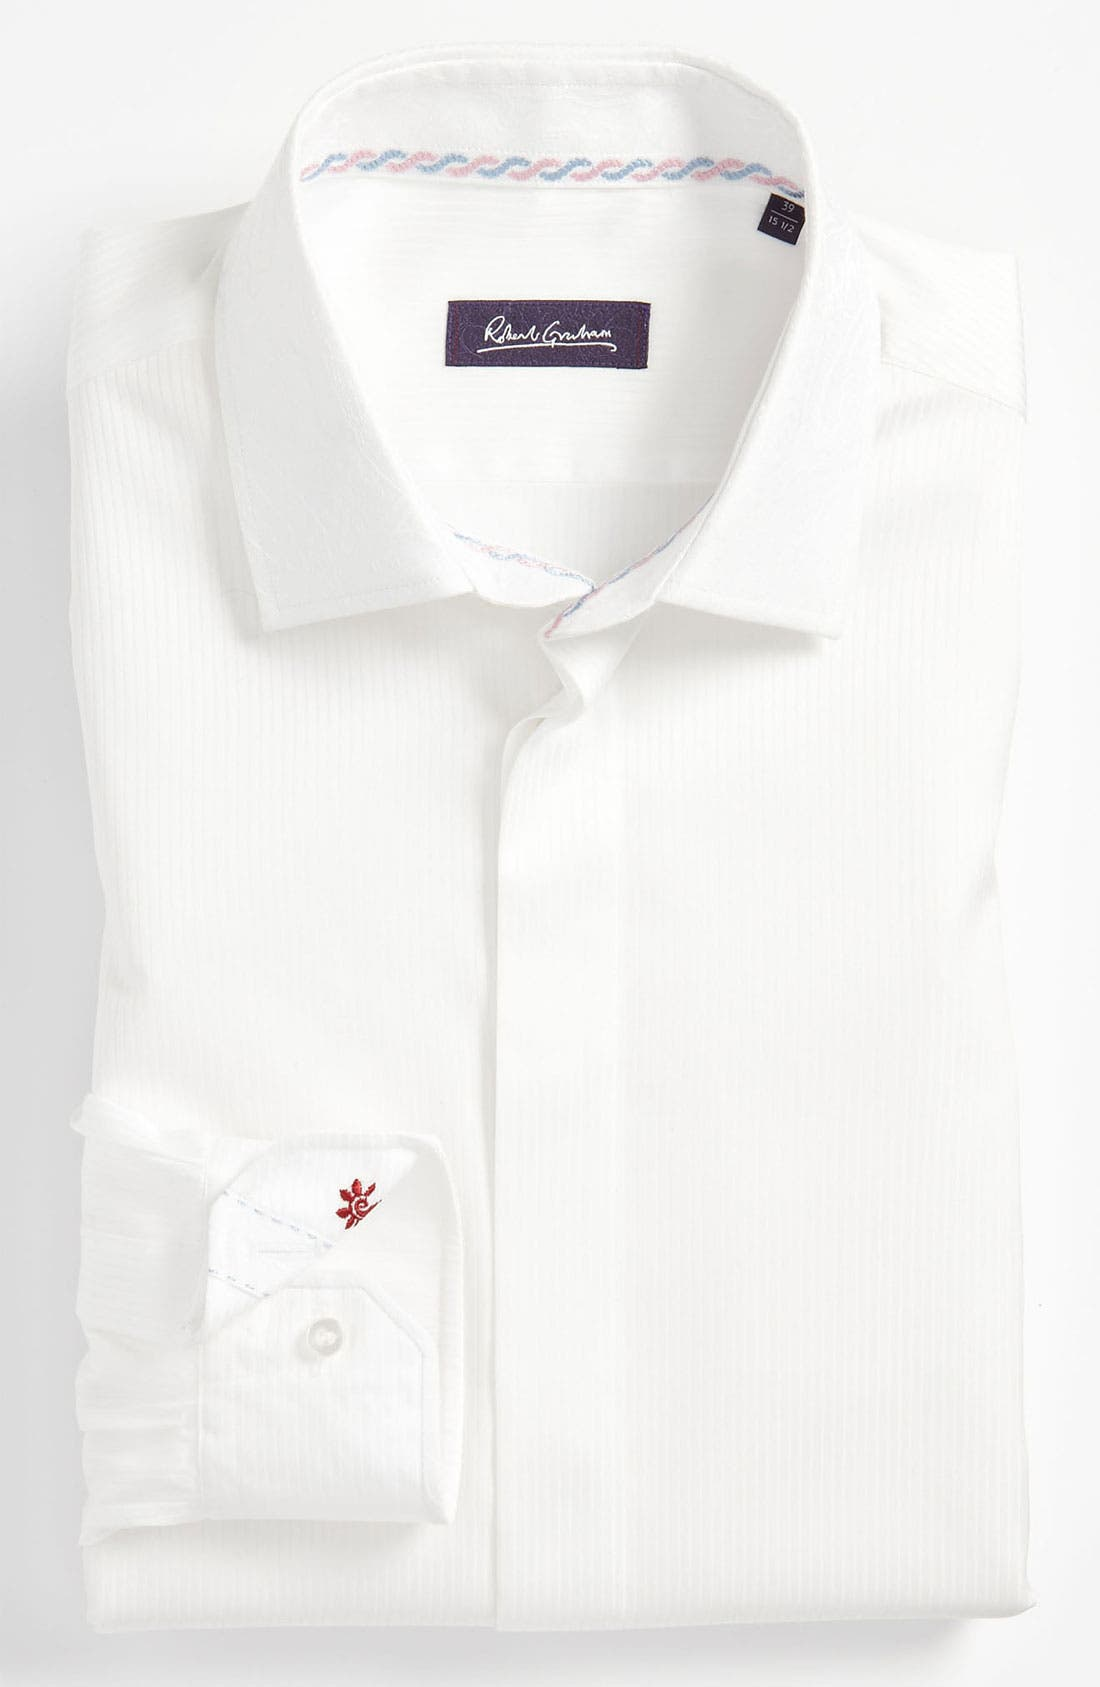 Main Image - Robert Graham Trim Fit Dress Shirt